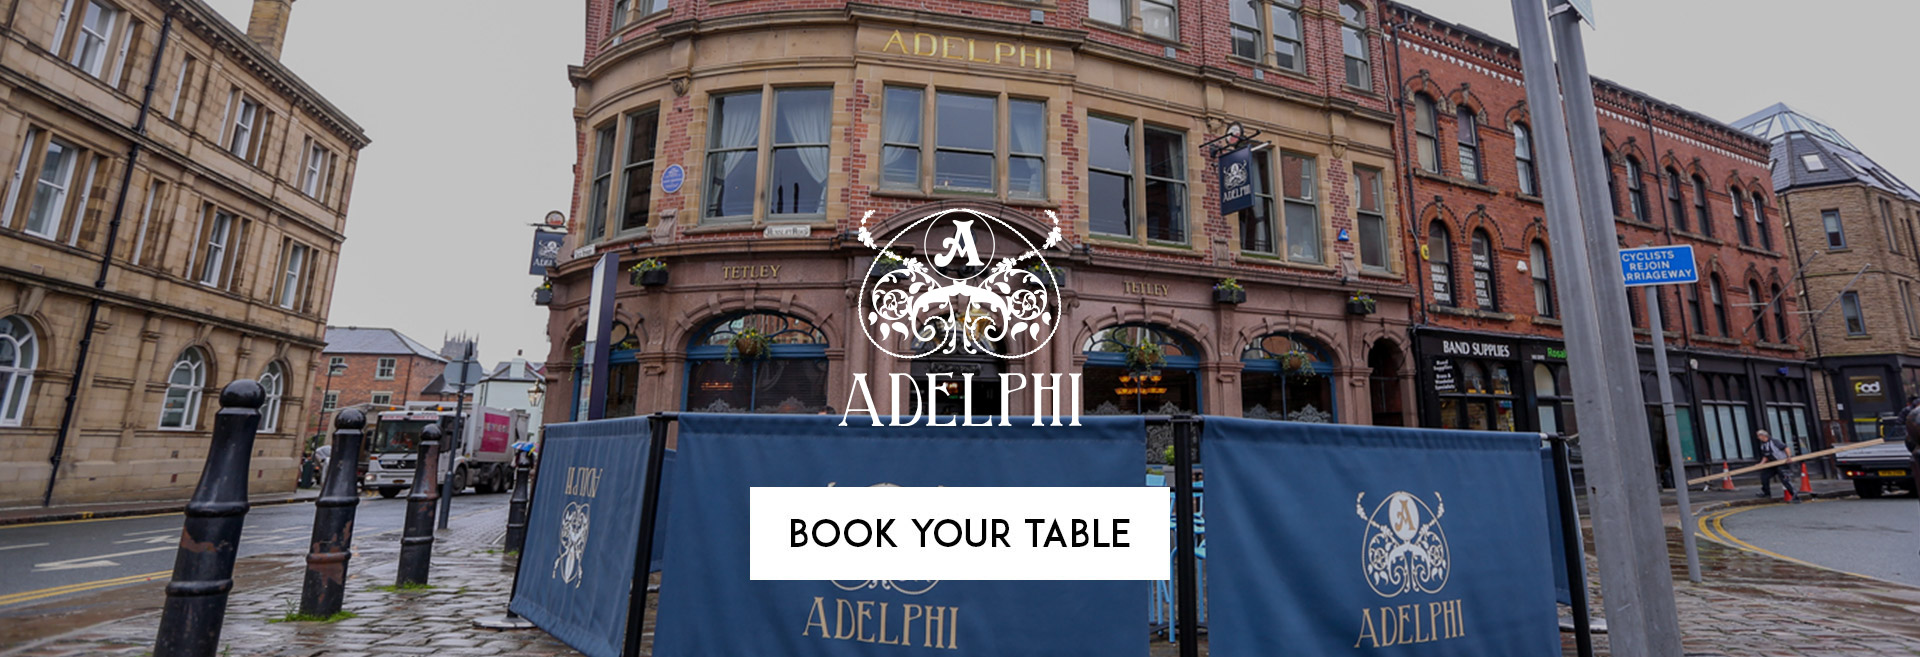 Book Your Table The Adelphi